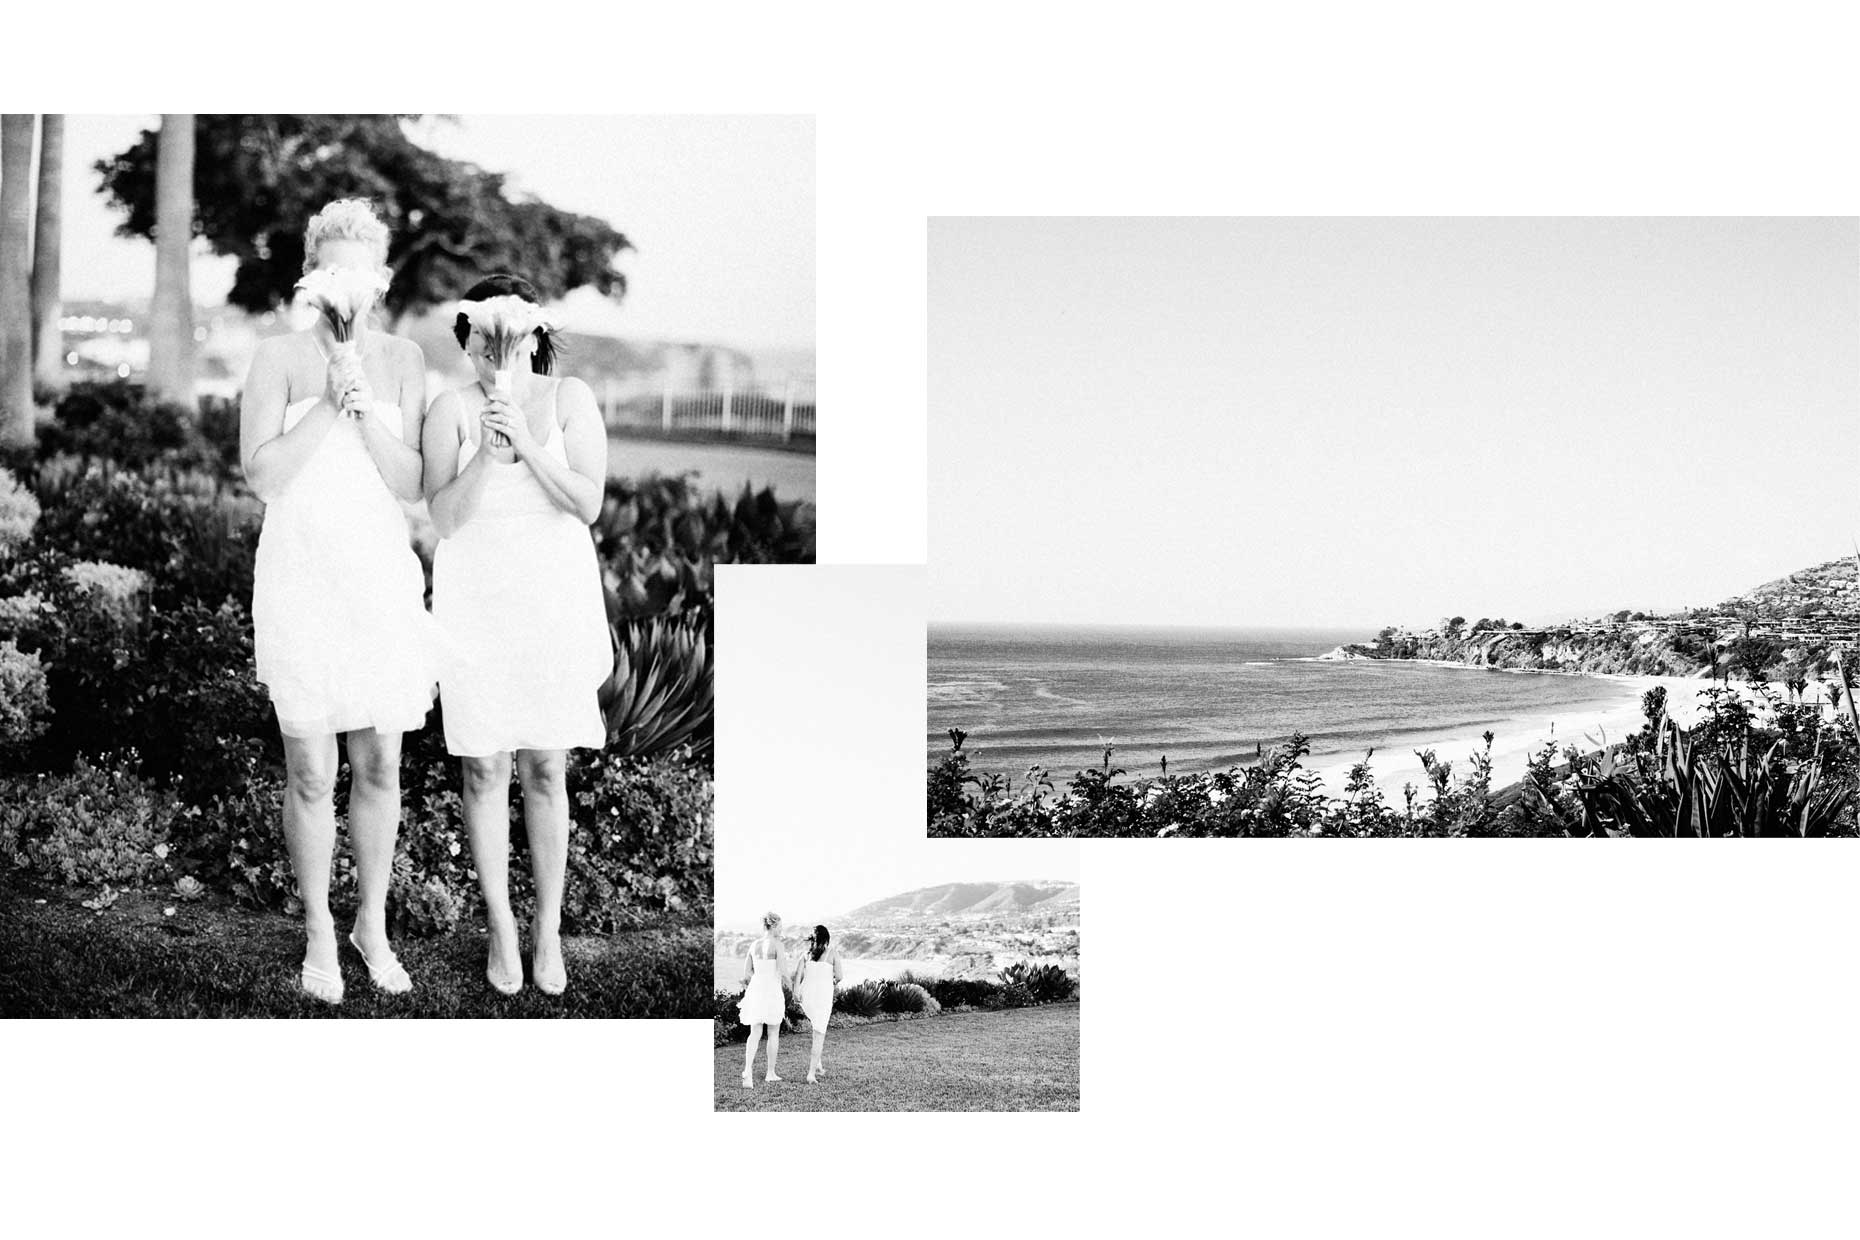 17-Ritz-Carlton-Laguna-Beach-Wedding-by-Pierre-olivier-Photography